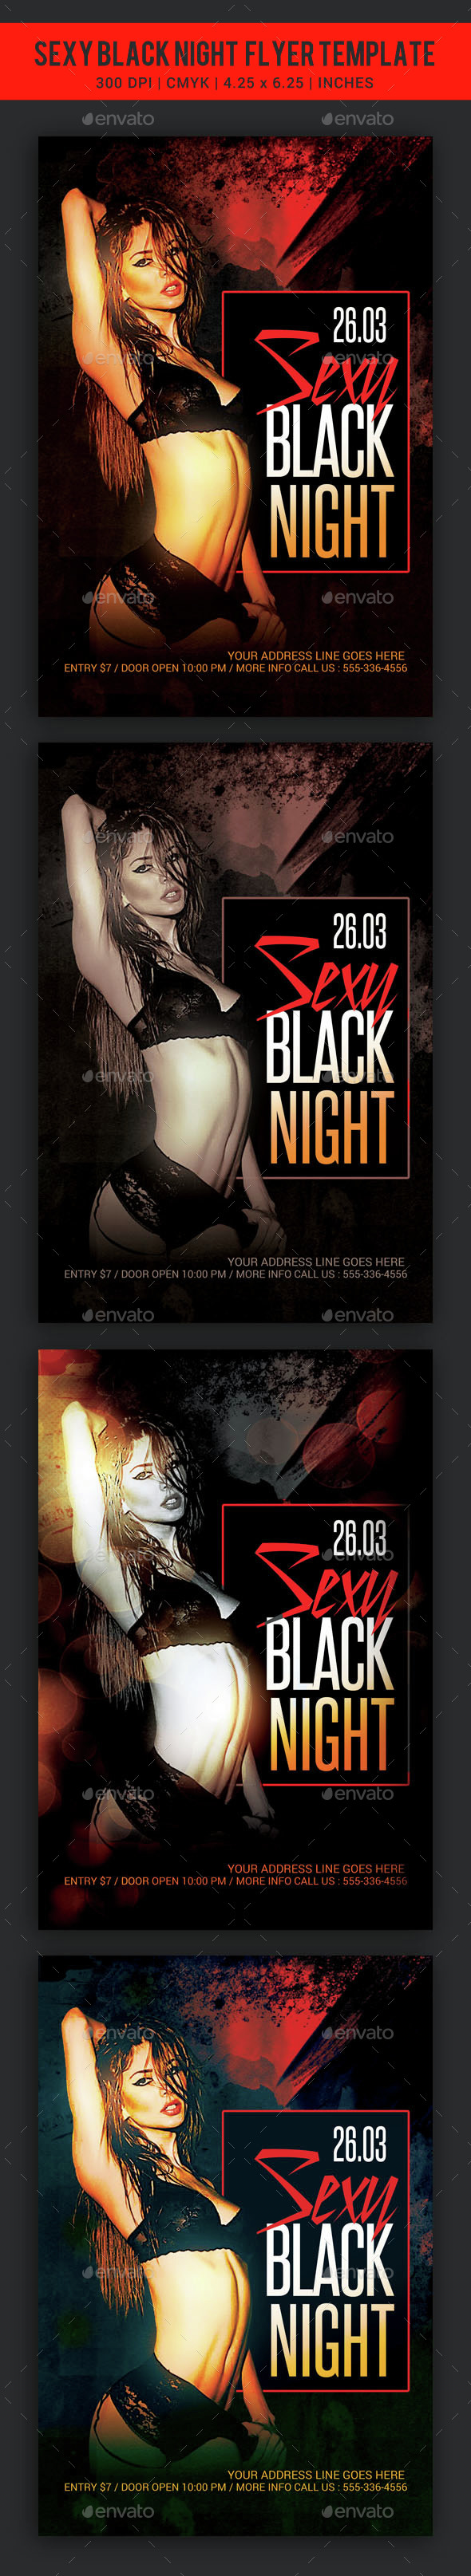 Sexy Black Night Party Flyer template - Clubs & Parties Events